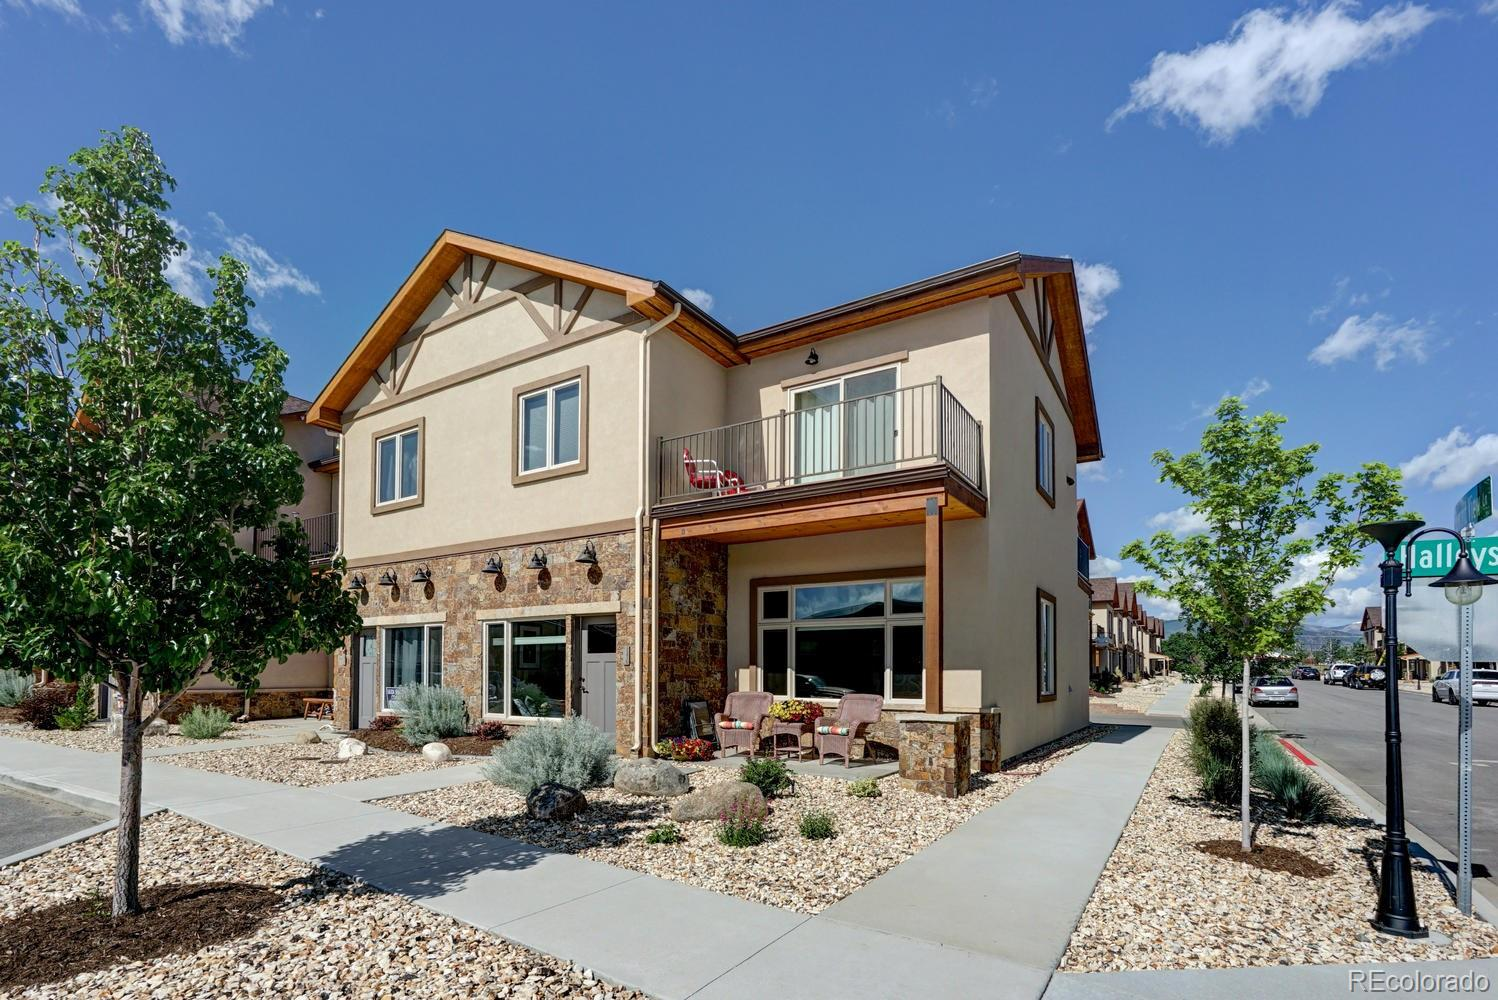 121 Halley's Avenue #D Property Photo - Poncha Springs, CO real estate listing